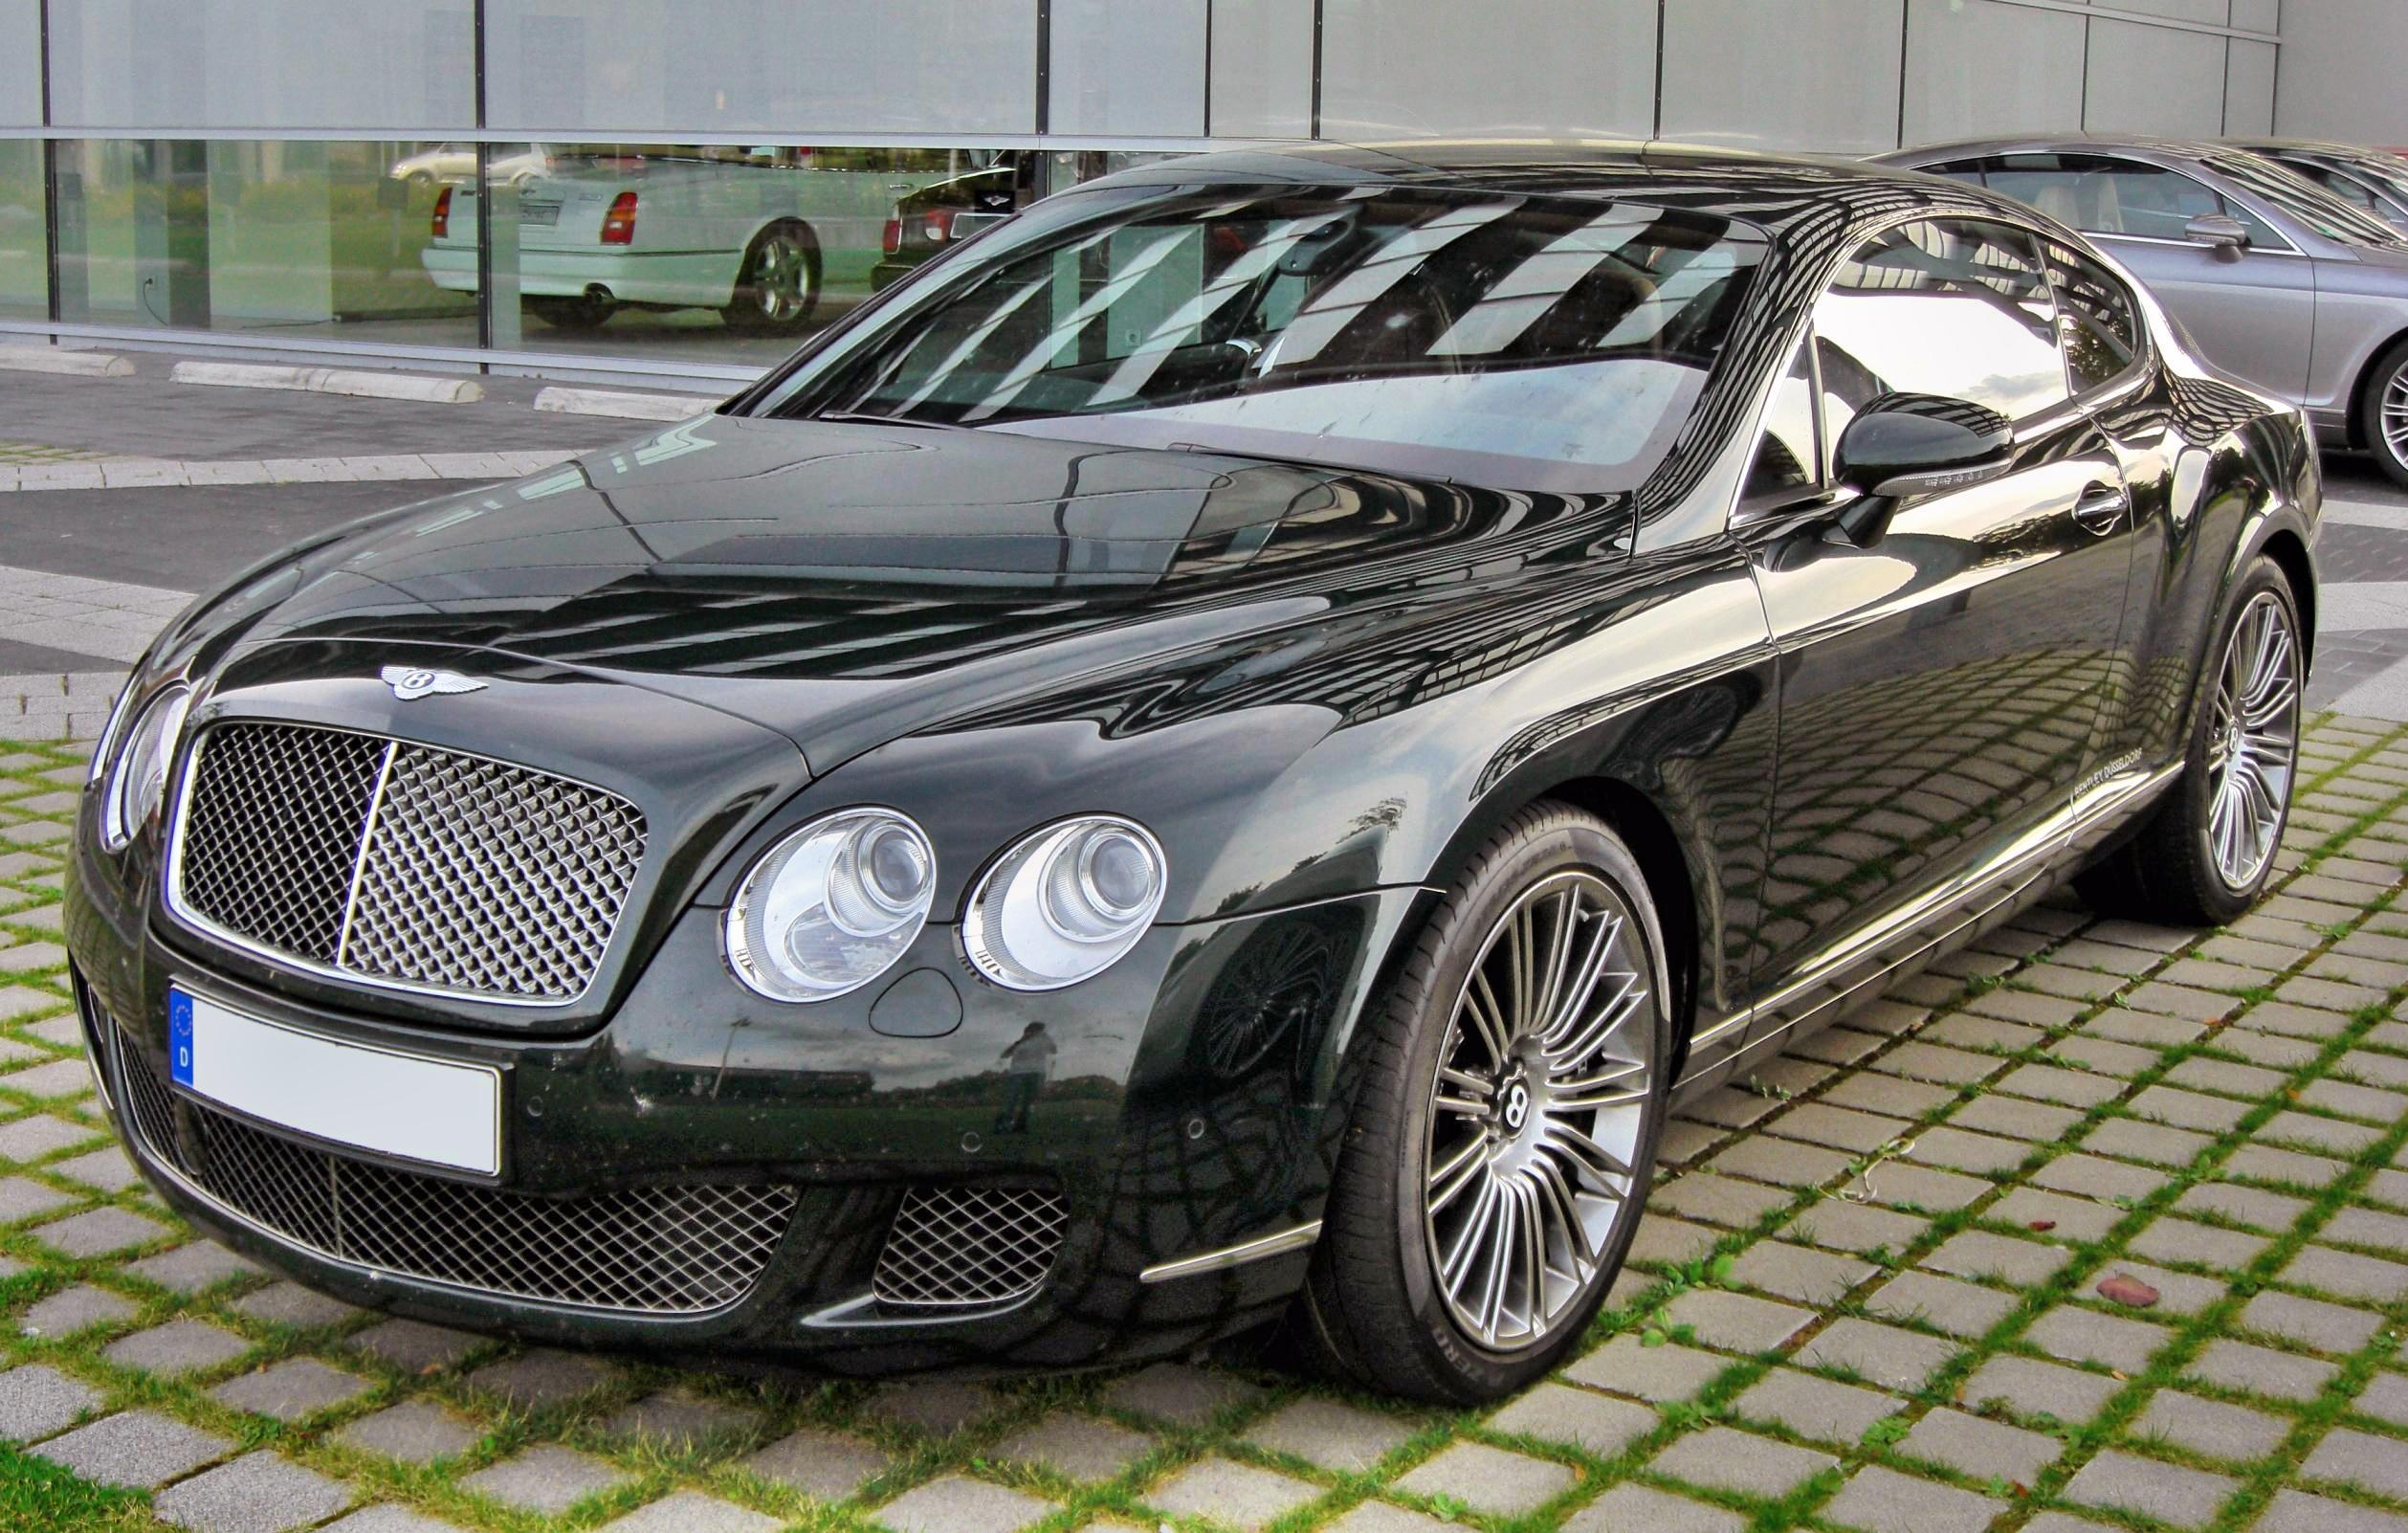 Bentley Continental Dimensions >> File:Bentley Continental GT Speed 20090720 front.JPG - Wikimedia Commons